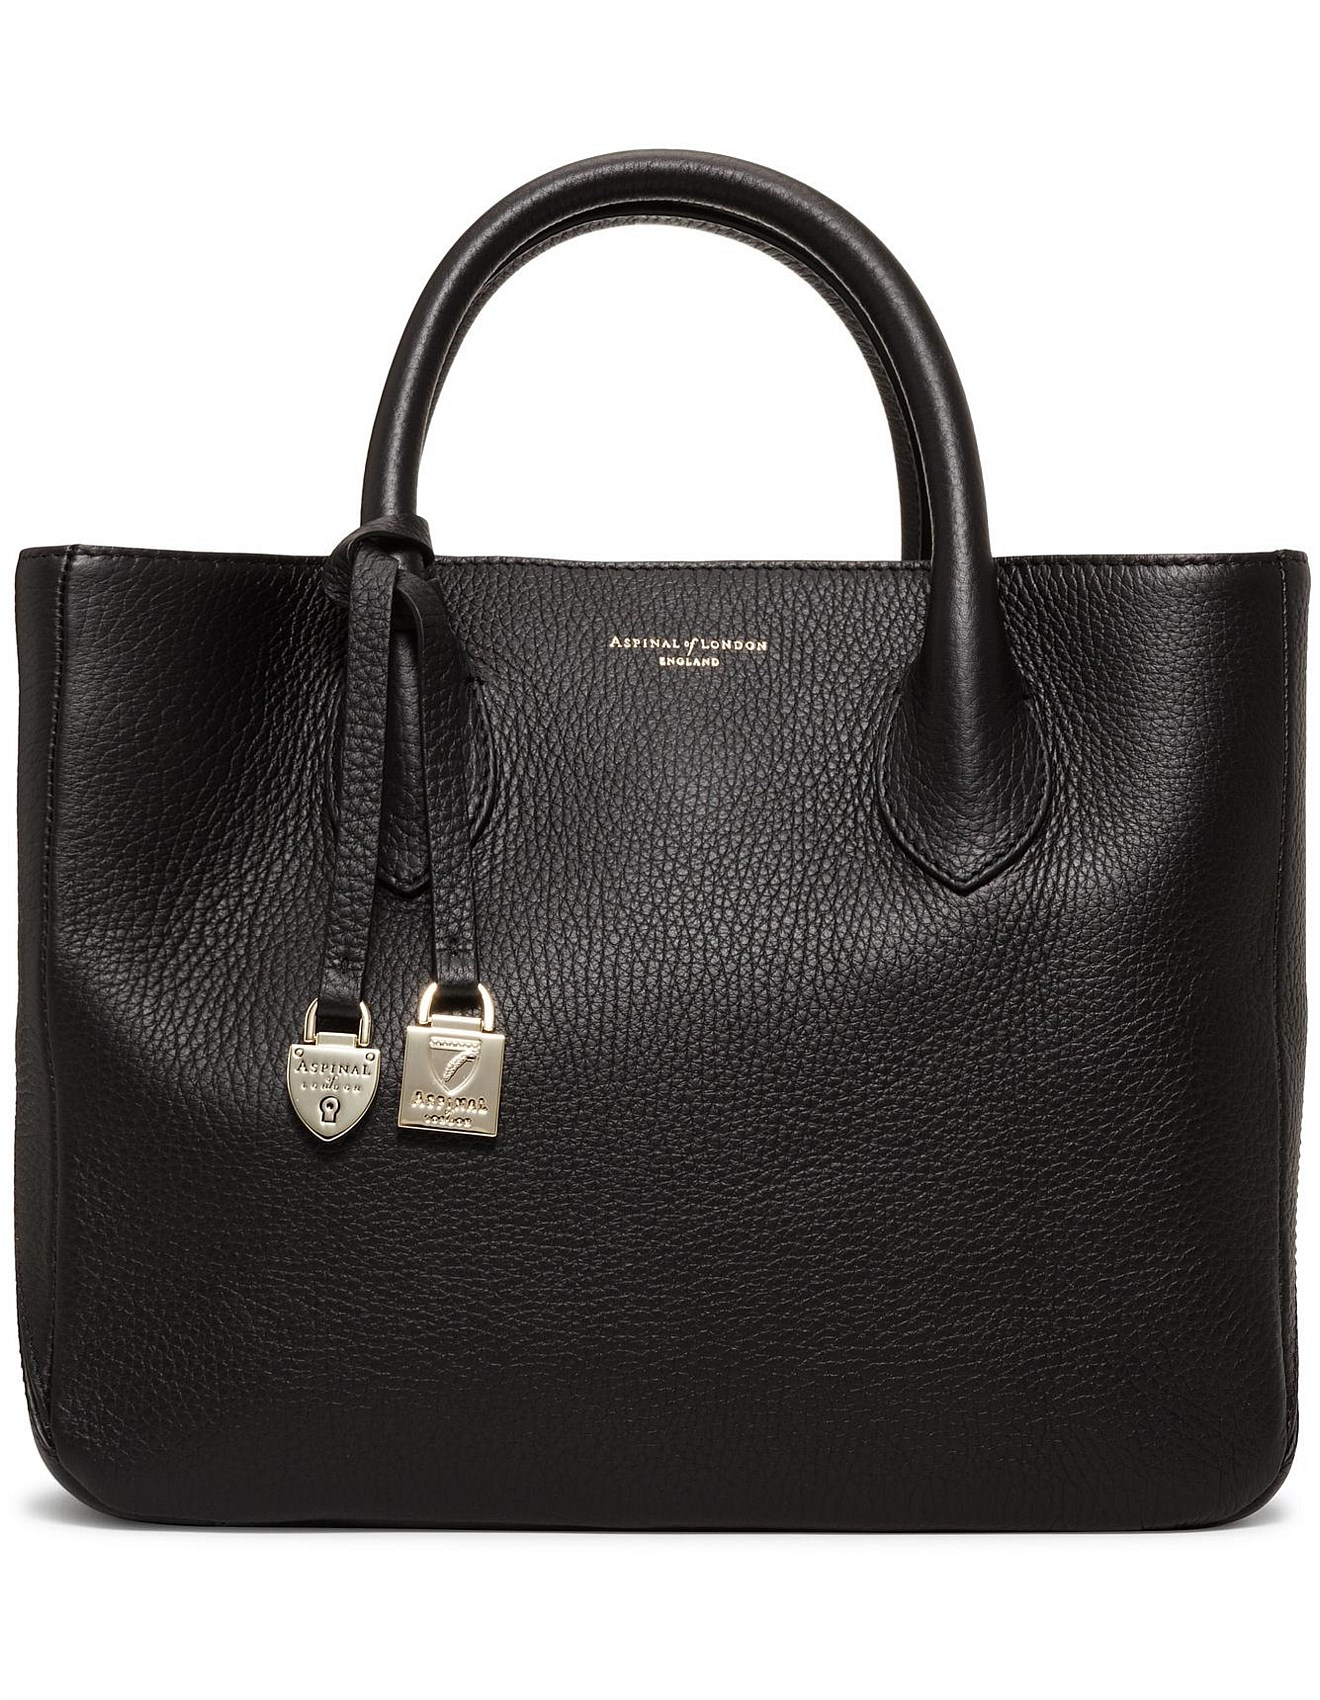 Small London Leather Tote